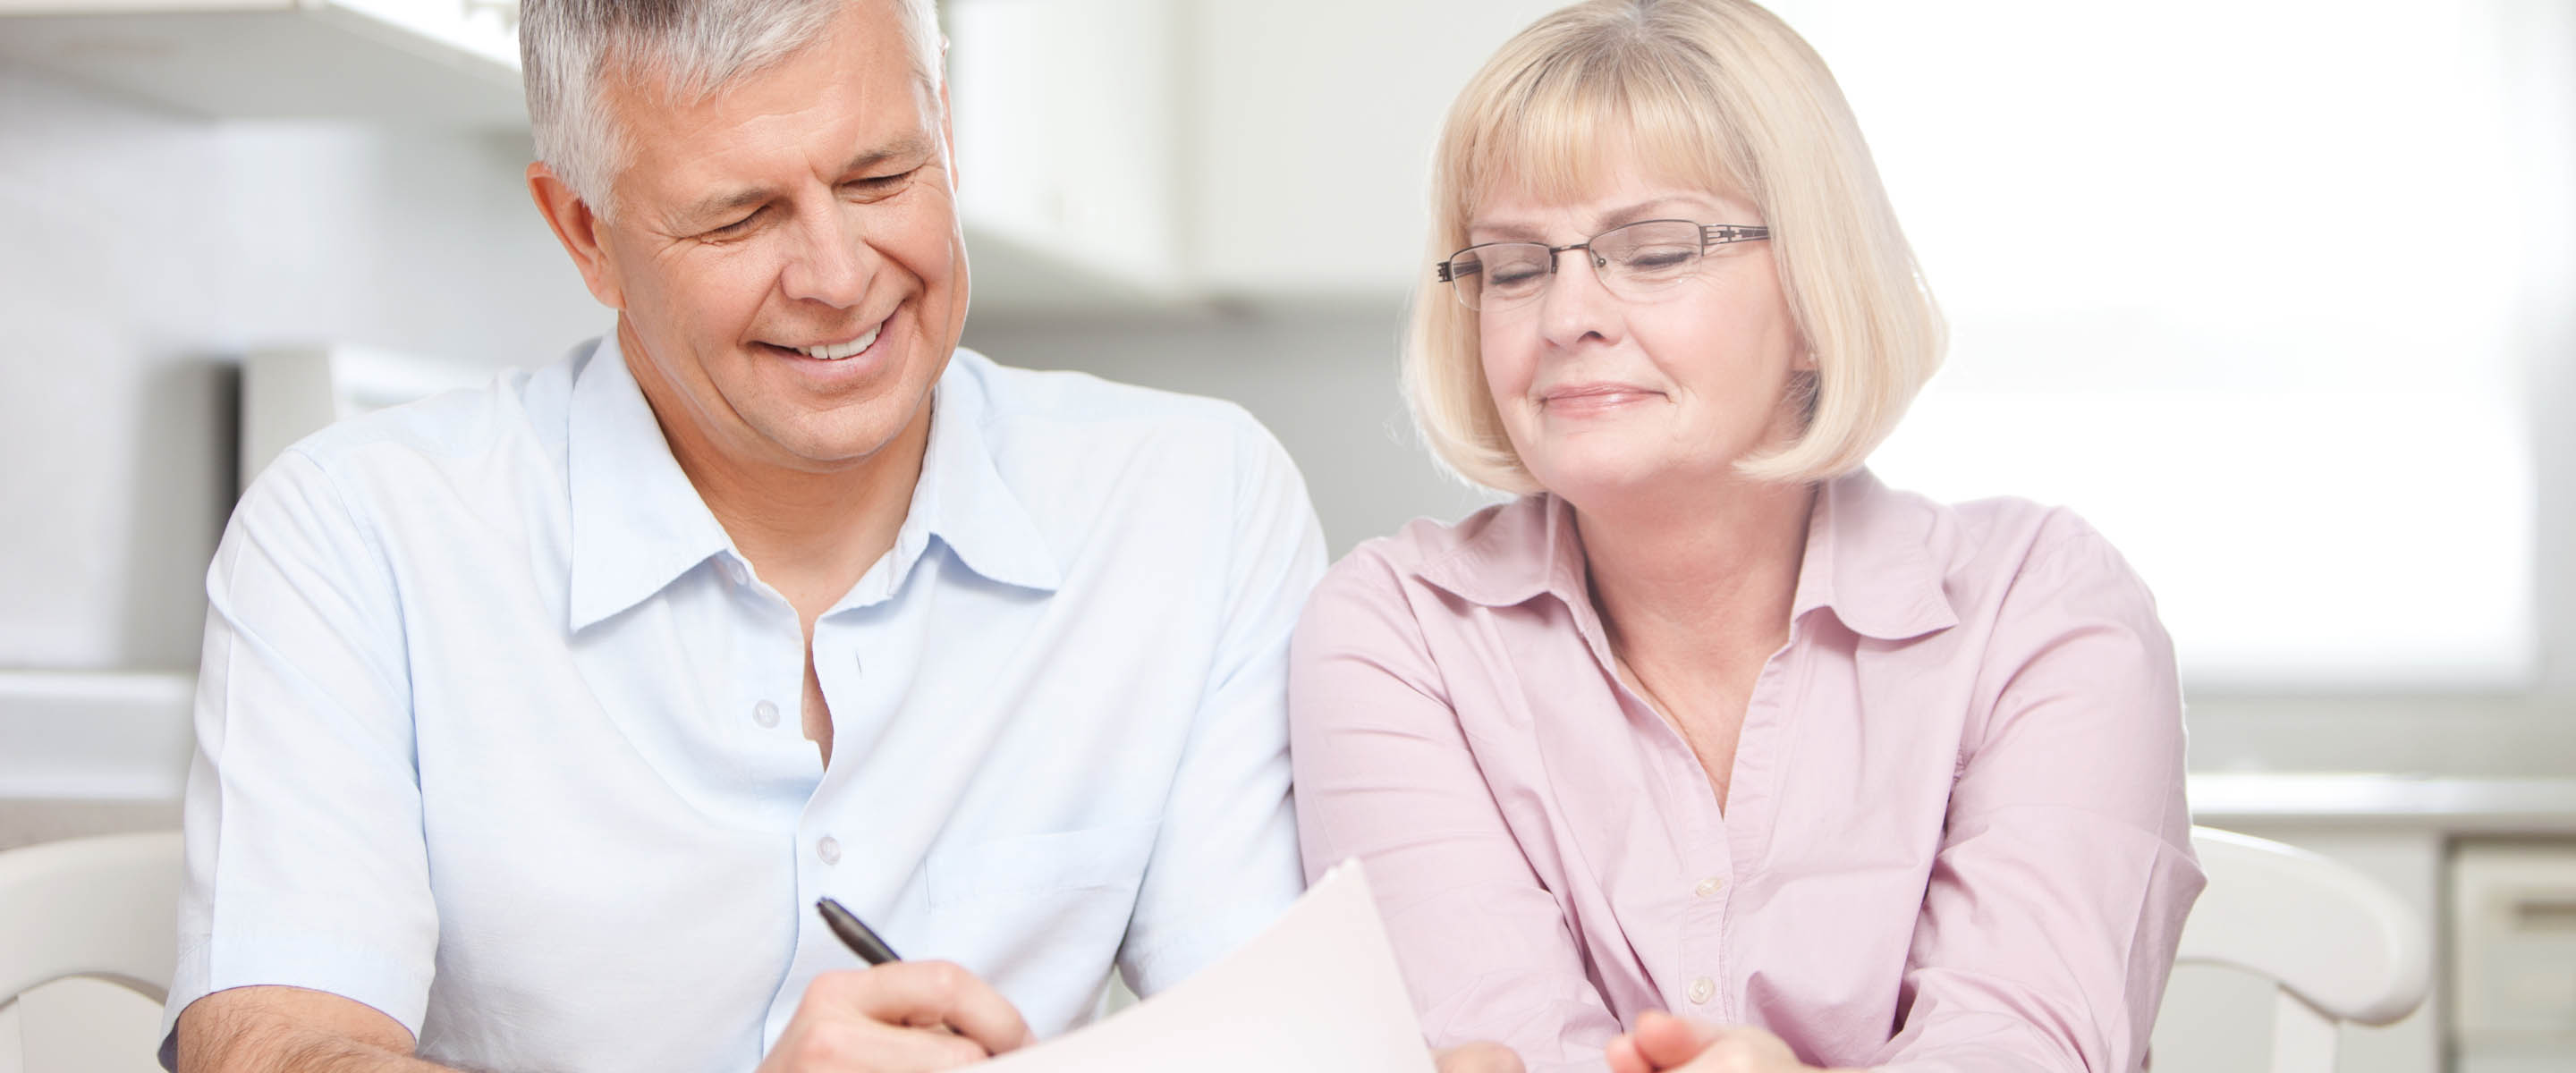 Power of Attorney - discussing plans